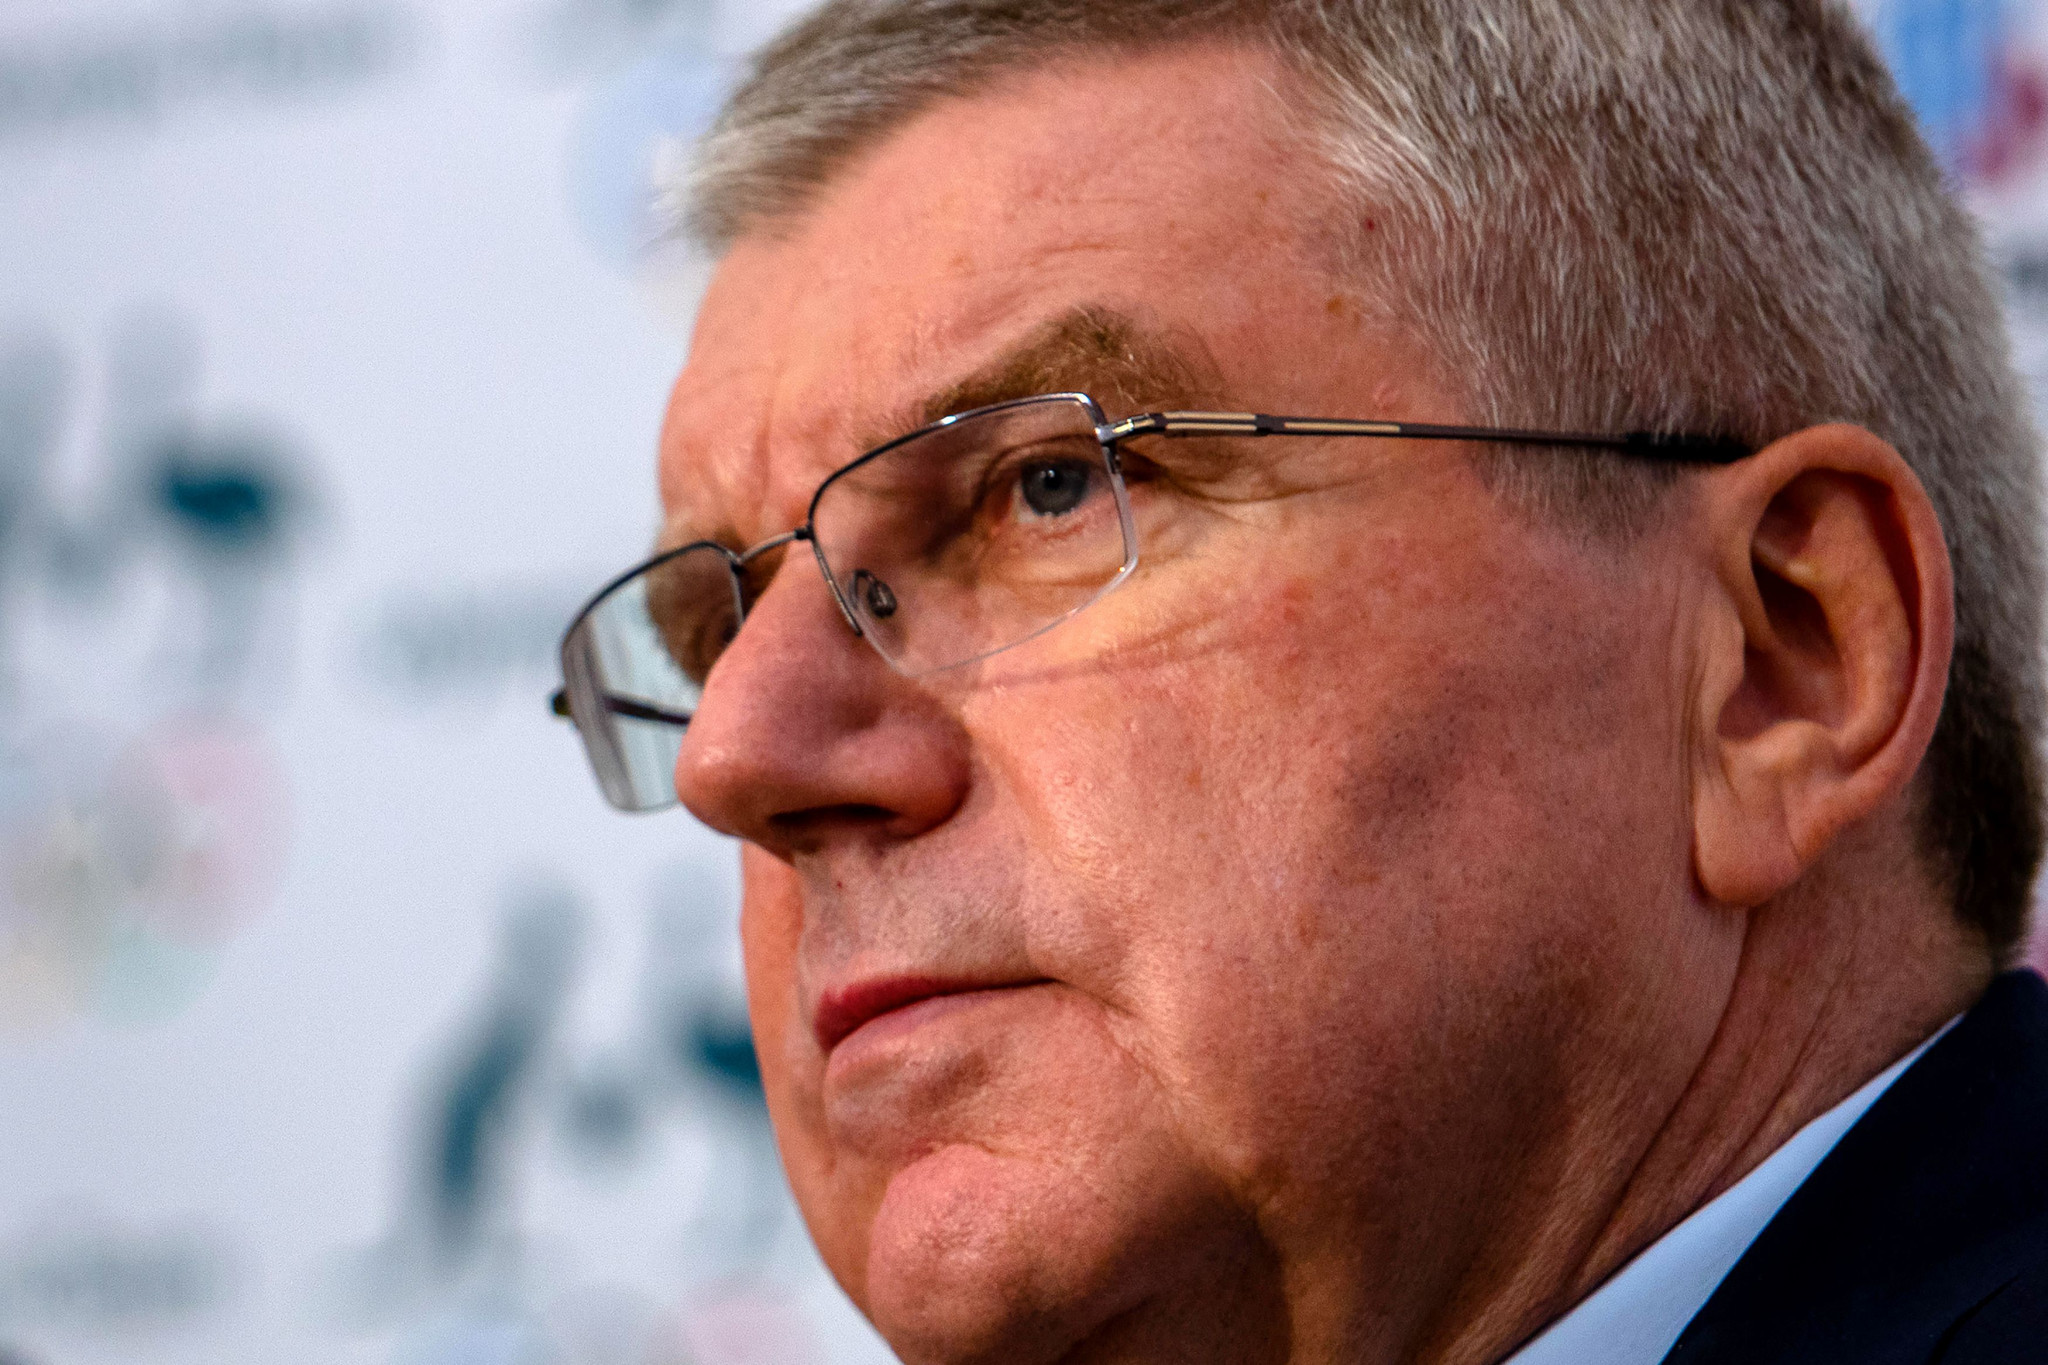 IOC President Thomas Bach will attend the Opening Ceremony of the 2019 World Taekwondo Championships in Manchester ©Getty Images